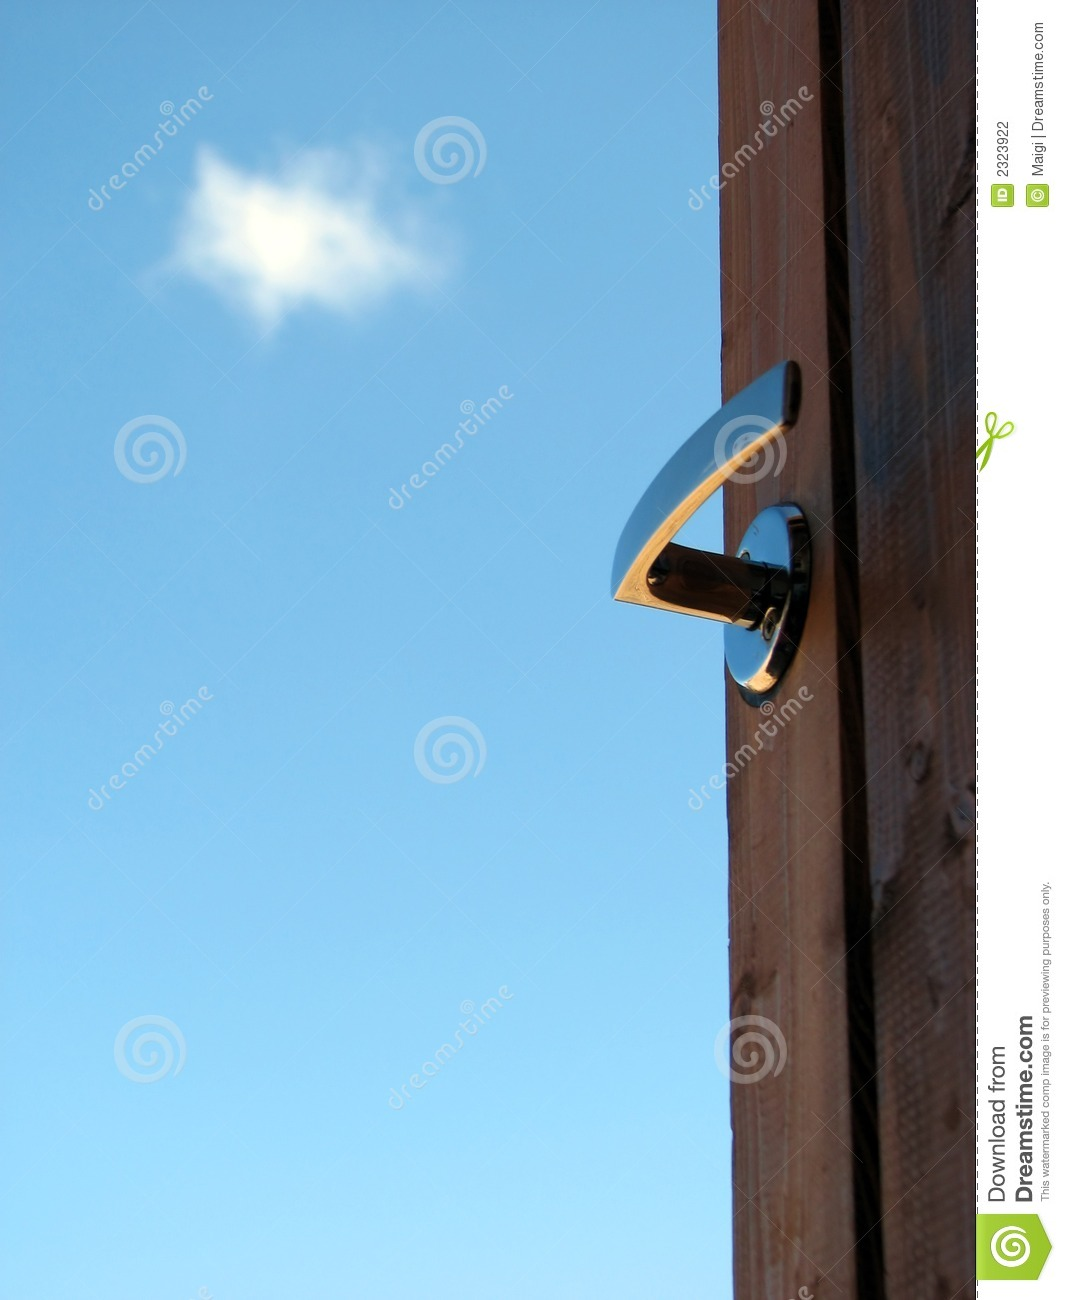 Open door stock photography image 2323922 for Porte ouverte